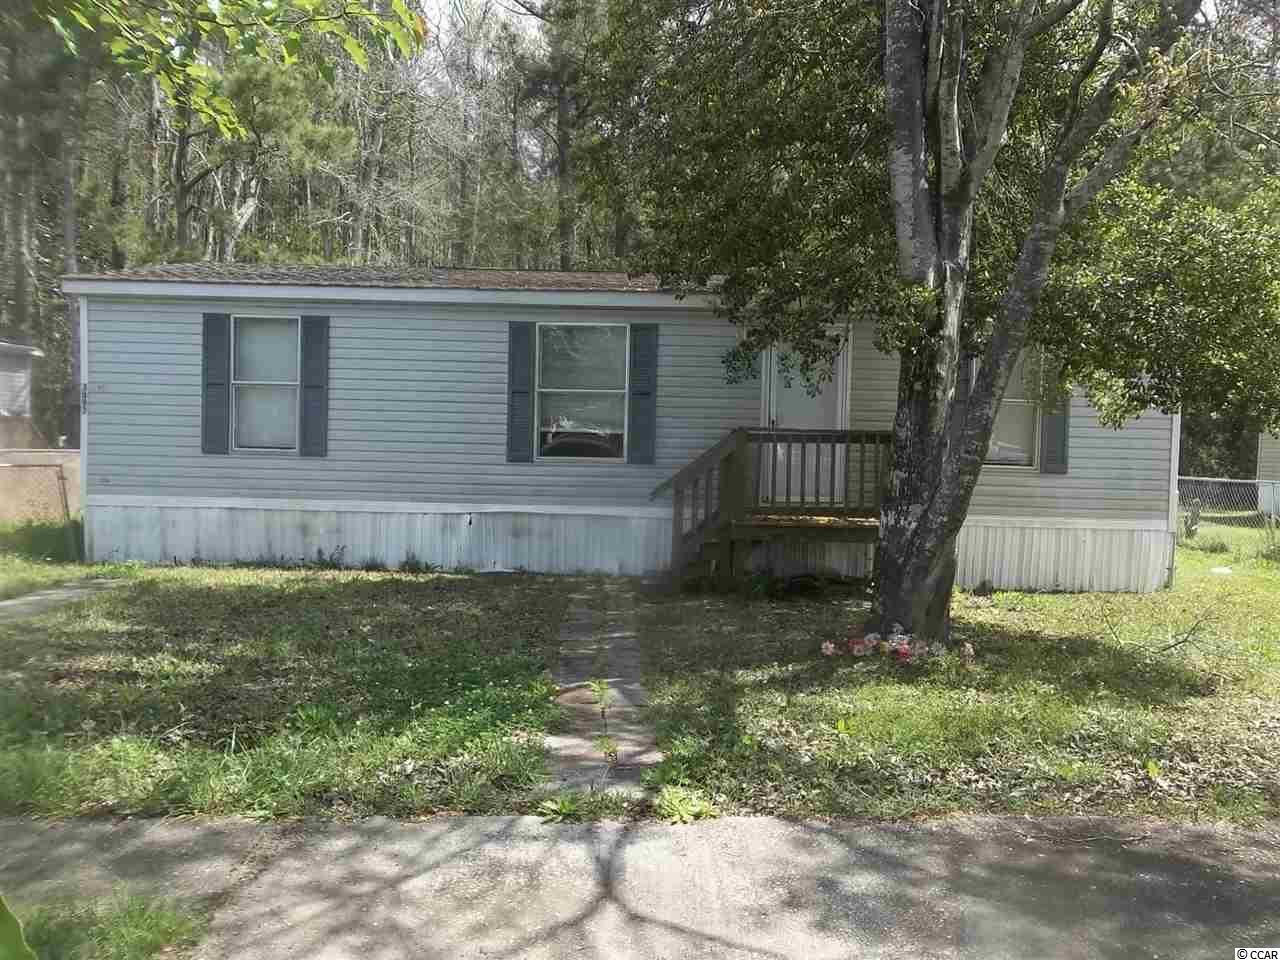 Good home, 3 bedrooms 2 baths fenced in backyard.  Will NOT qualify for FHA or VA.